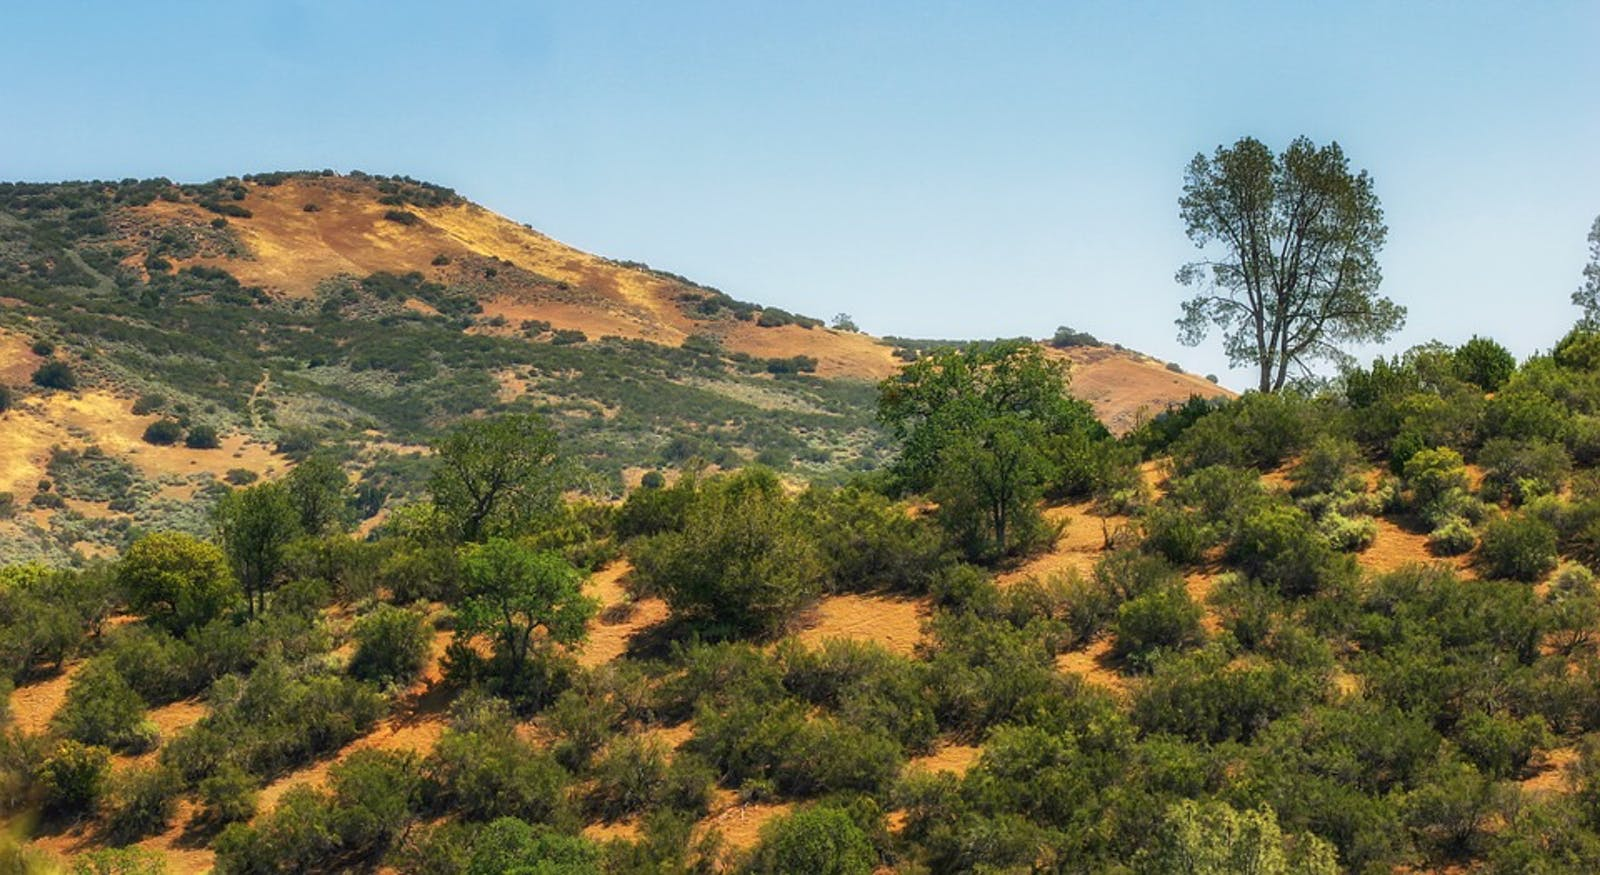 California Interior Chaparral and Woodlands